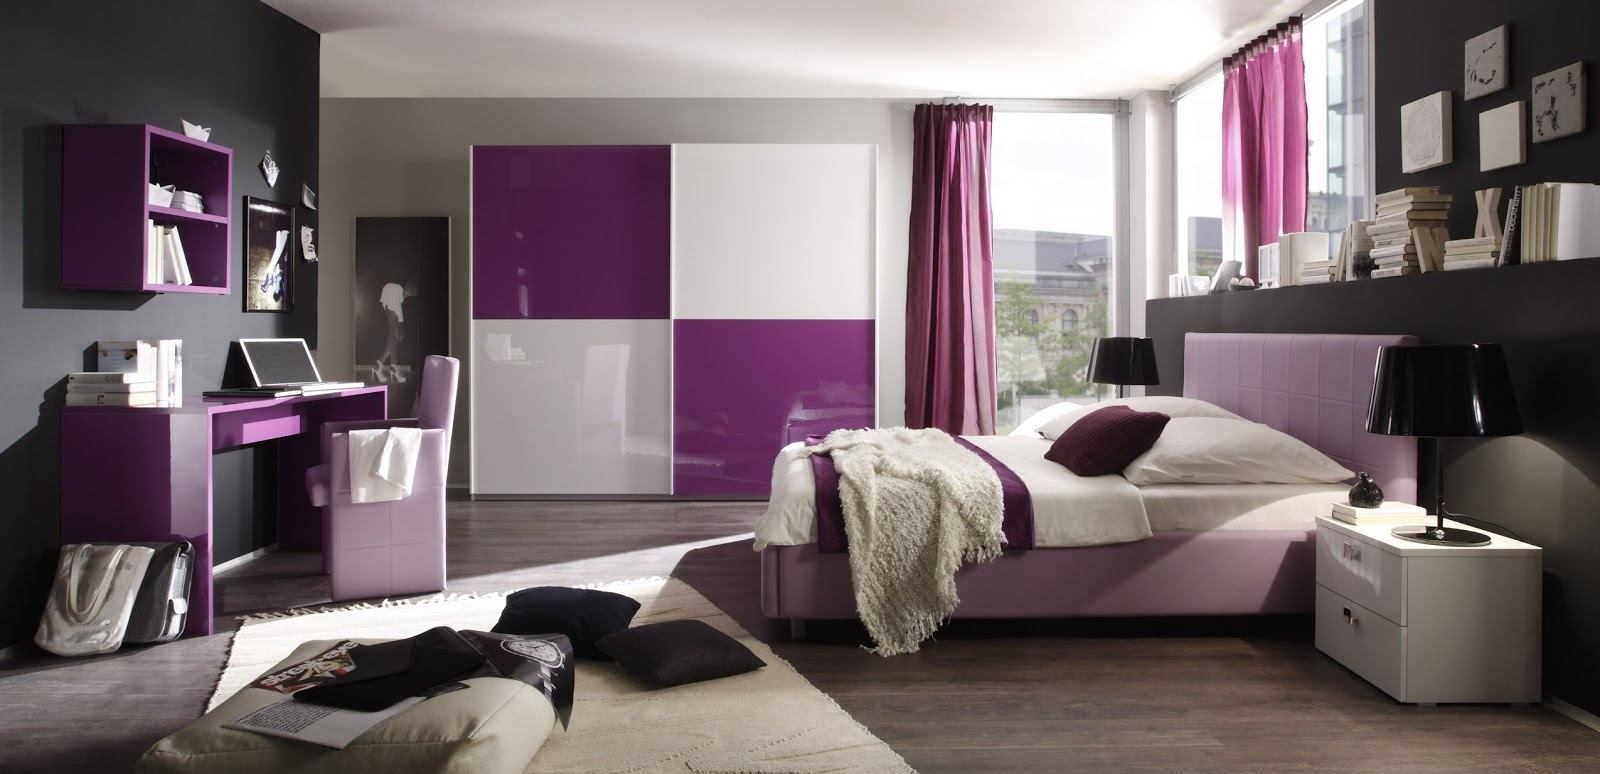 dormitorios para chicas en color morado dormitorios colores y estilos. Black Bedroom Furniture Sets. Home Design Ideas